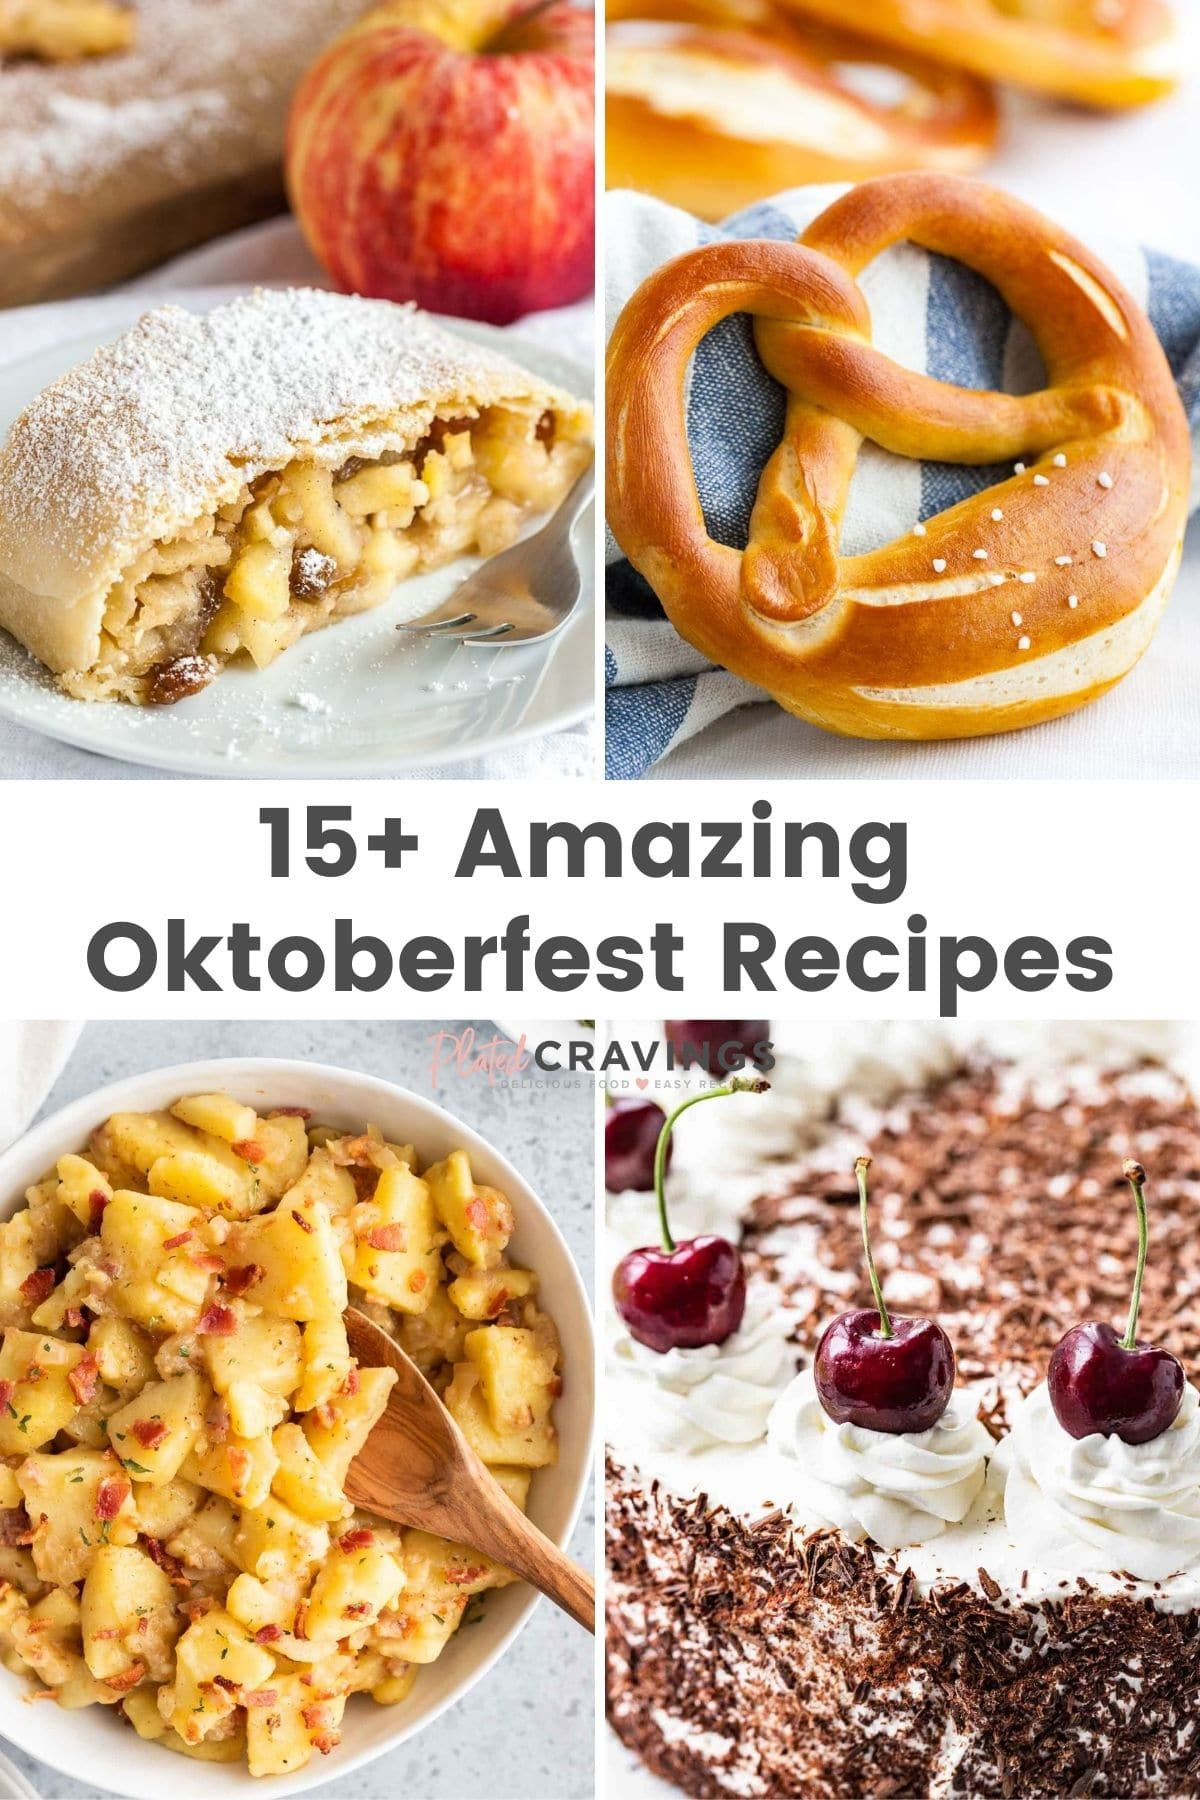 Four images of classic Bavarian food